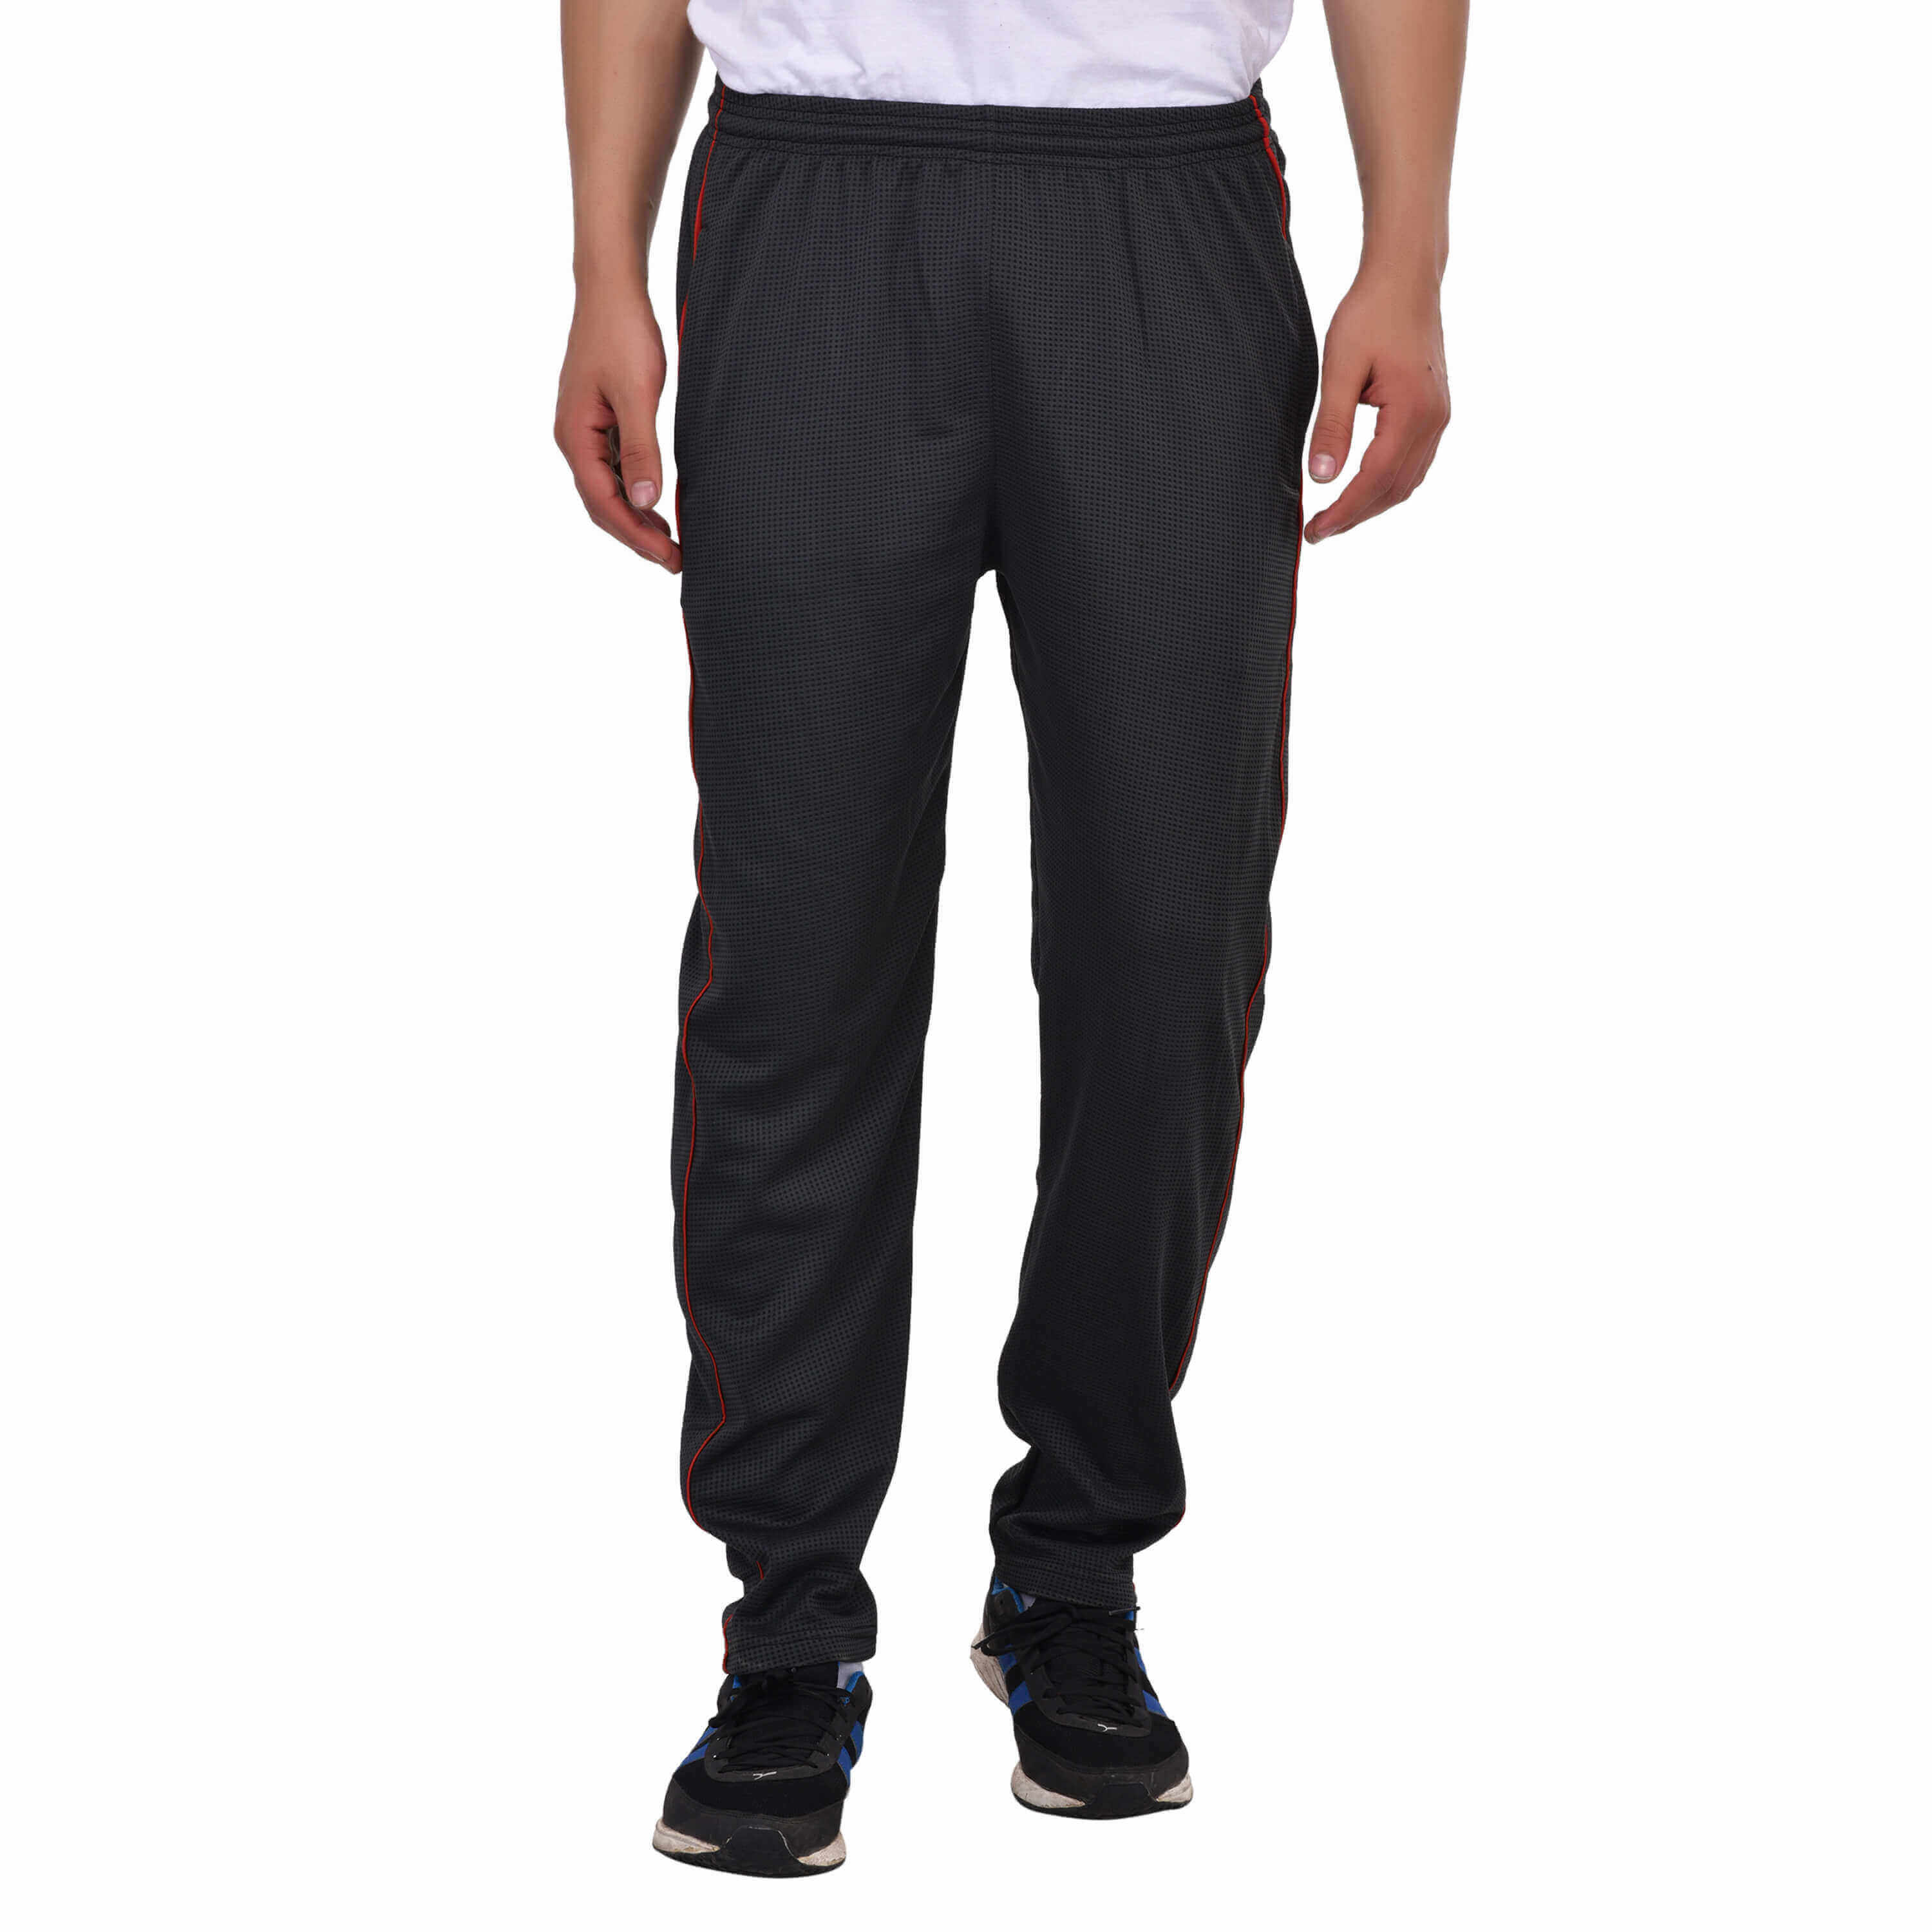 Gym Trousers Manufacturers in Meerut